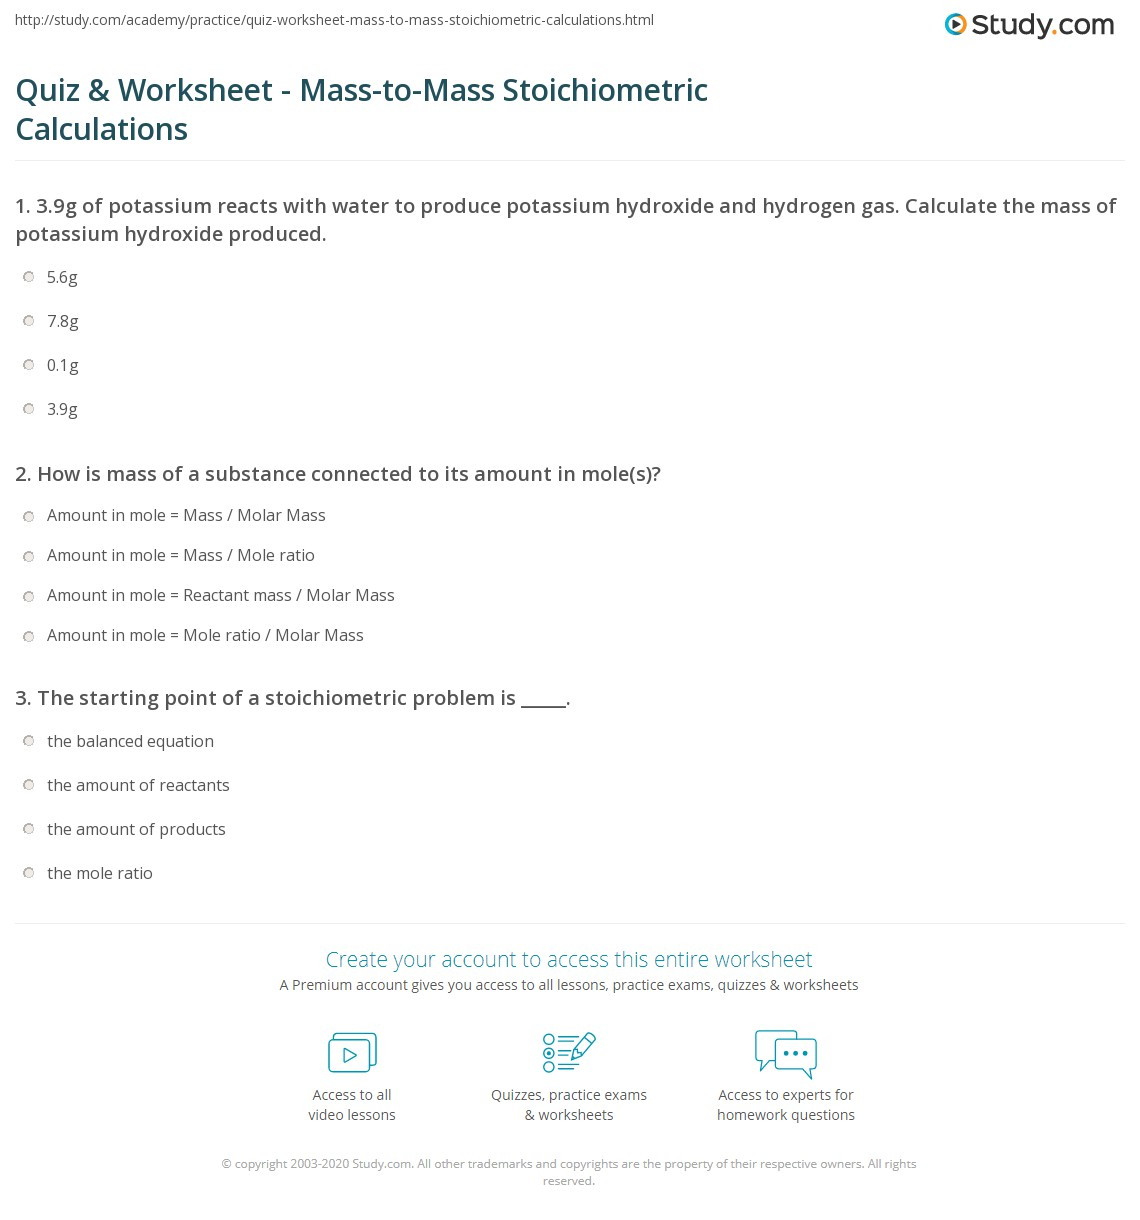 Quiz & Worksheet Mass to Mass Stoichiometric Calculations